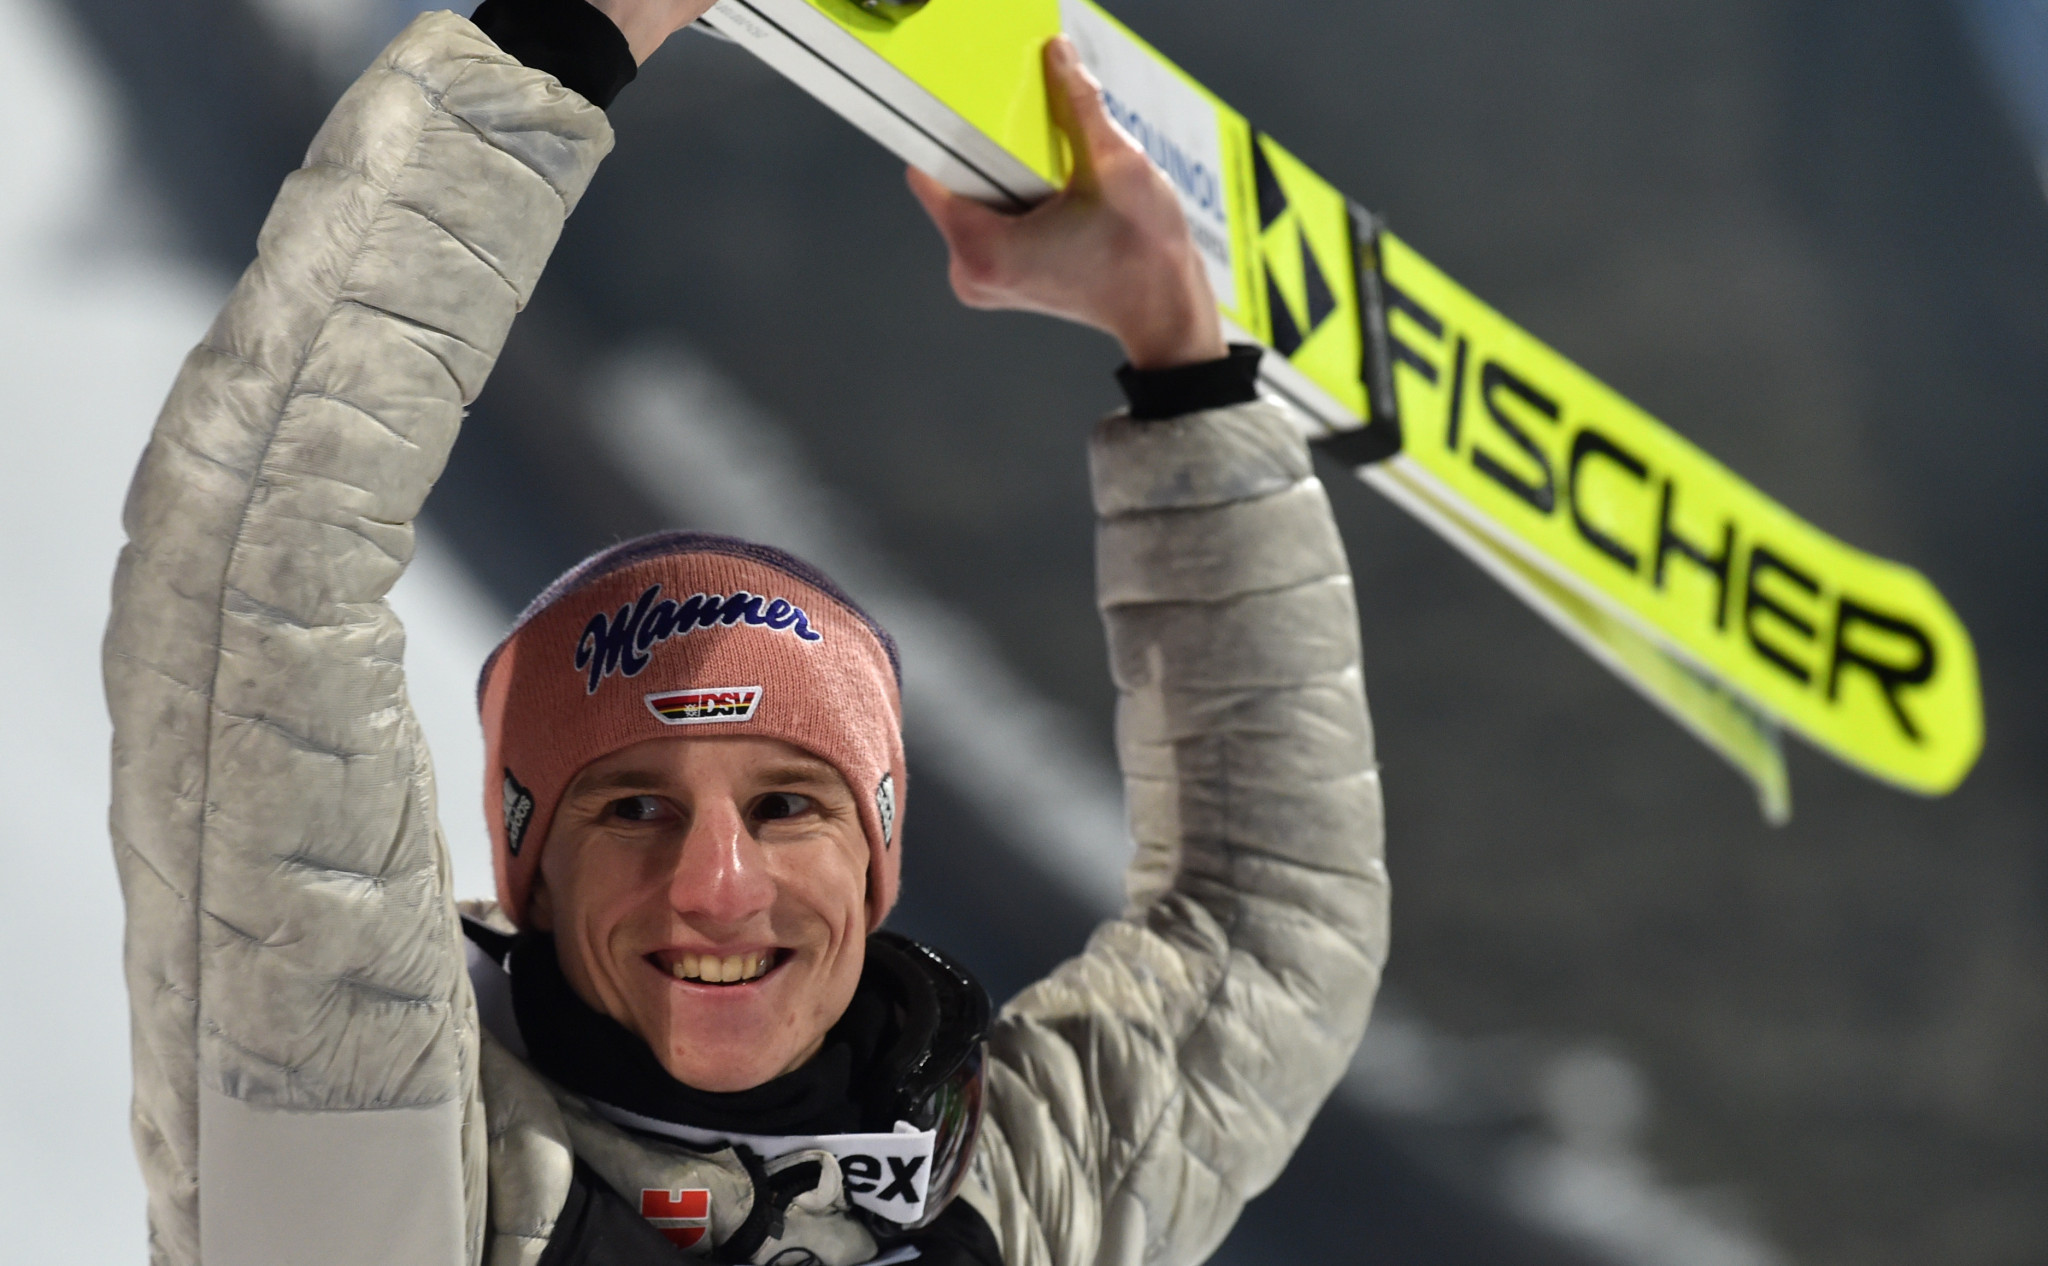 Geiger wins again at FIS Ski Jumping World Cup in Val di Fiemme